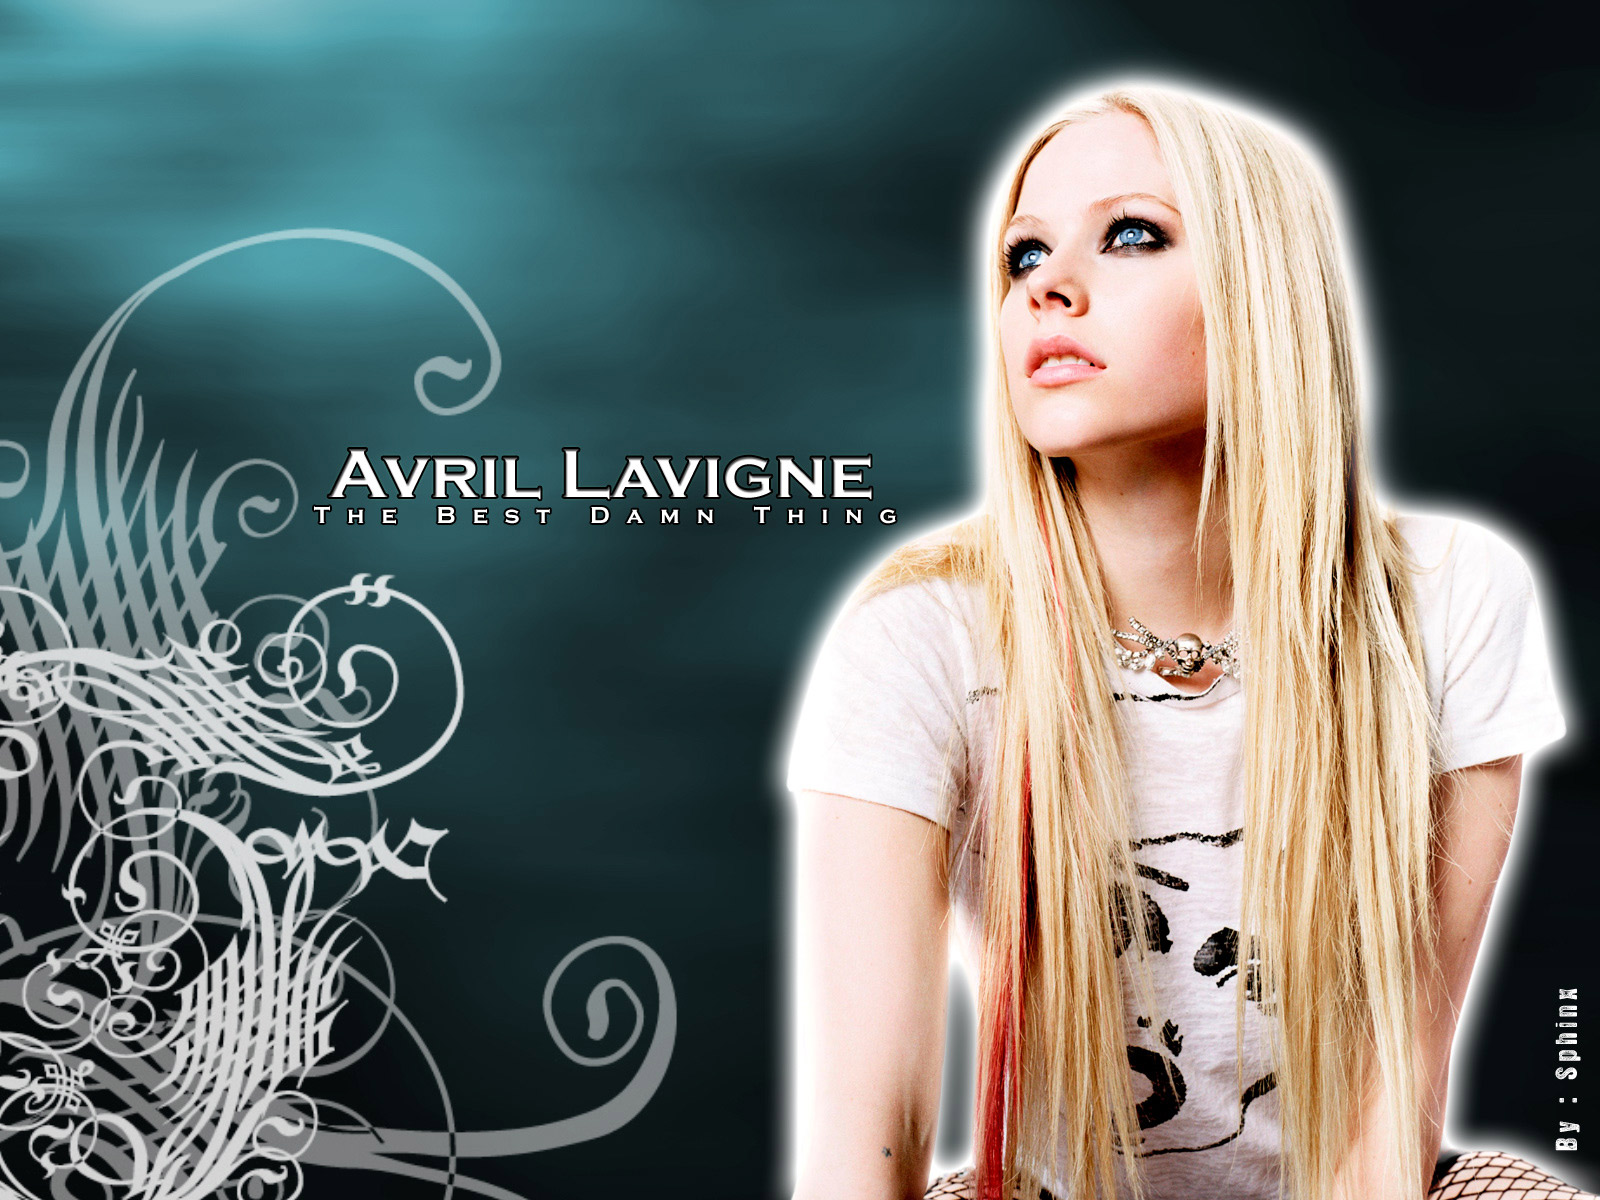 Pakistani Beautiful Girl Wallpaper Avril Lavigne Nice Pictures Hollywood Celebrity